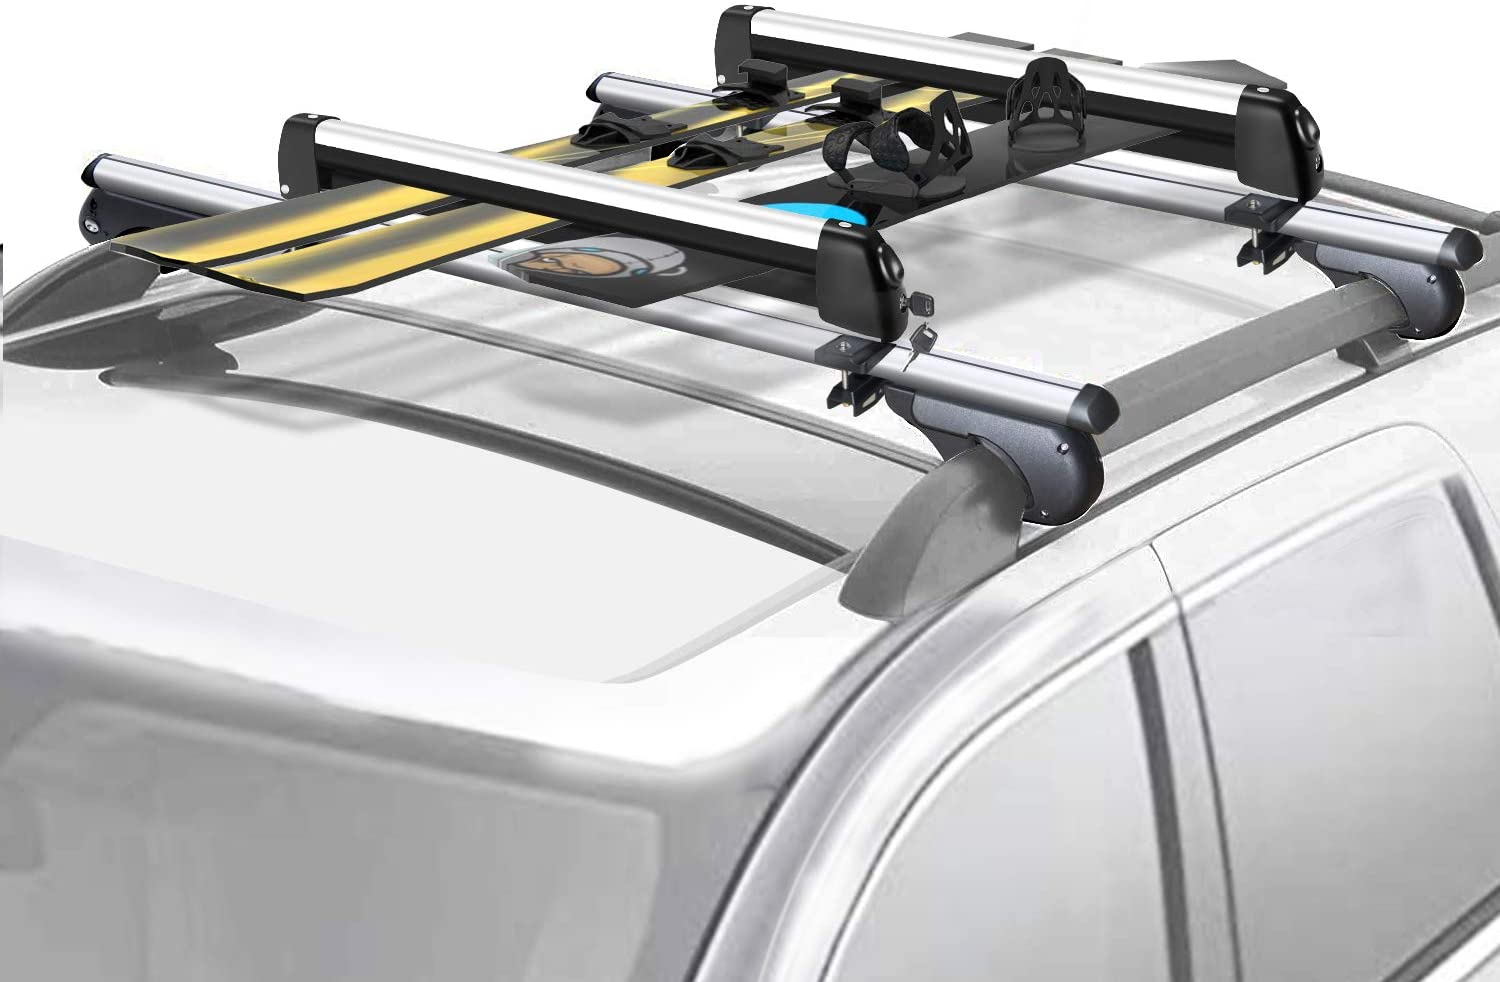 FIVKLEMNZ 31 Aluminum Universal Ski & Snowboard Roof Rack, Ski Board Roof Carrier, Fits for Most Vehicles Equipped Crossbars, Fits Up to 6 Pairs Skis or 4 Snowboards